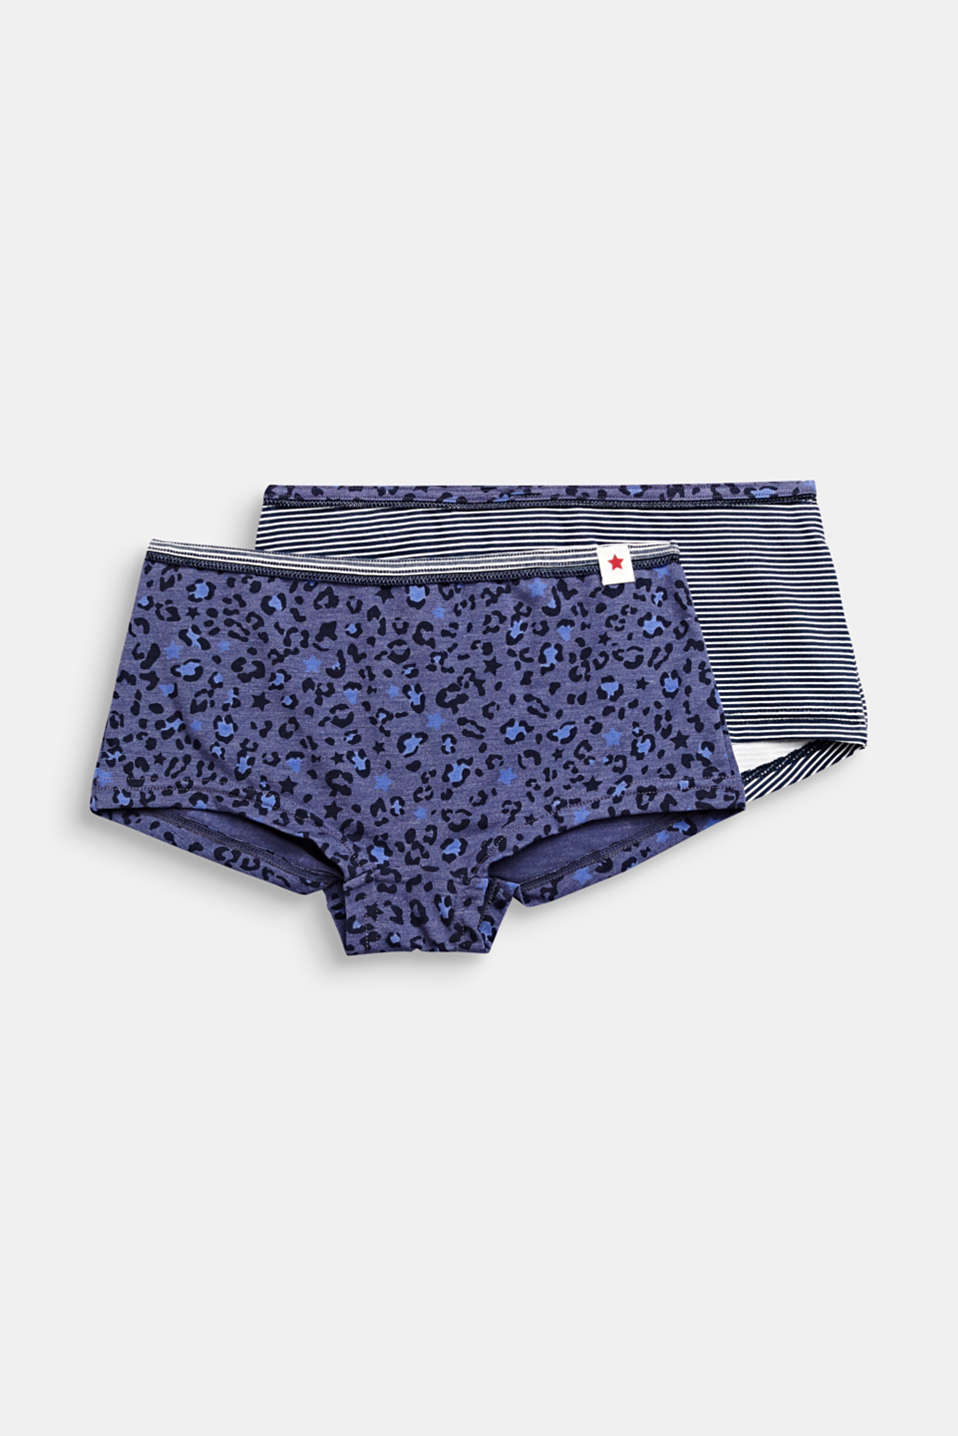 Esprit - Lot de 2 shortys à imprimé